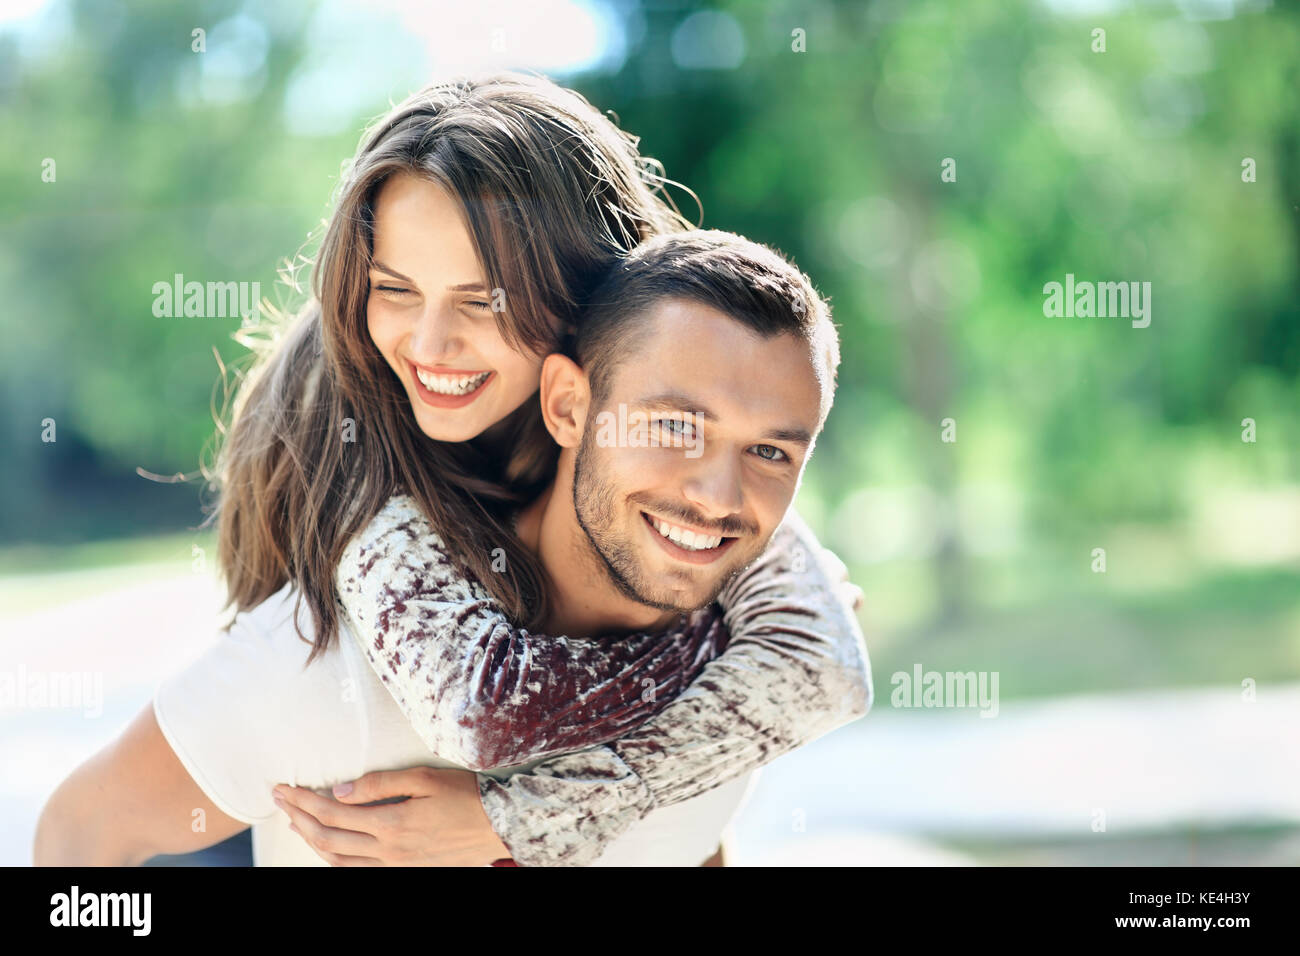 Outdoors portrait of lovers happy young man and woman looking at camera. Smiling girl piggyback of her boyfriend. - Stock Image